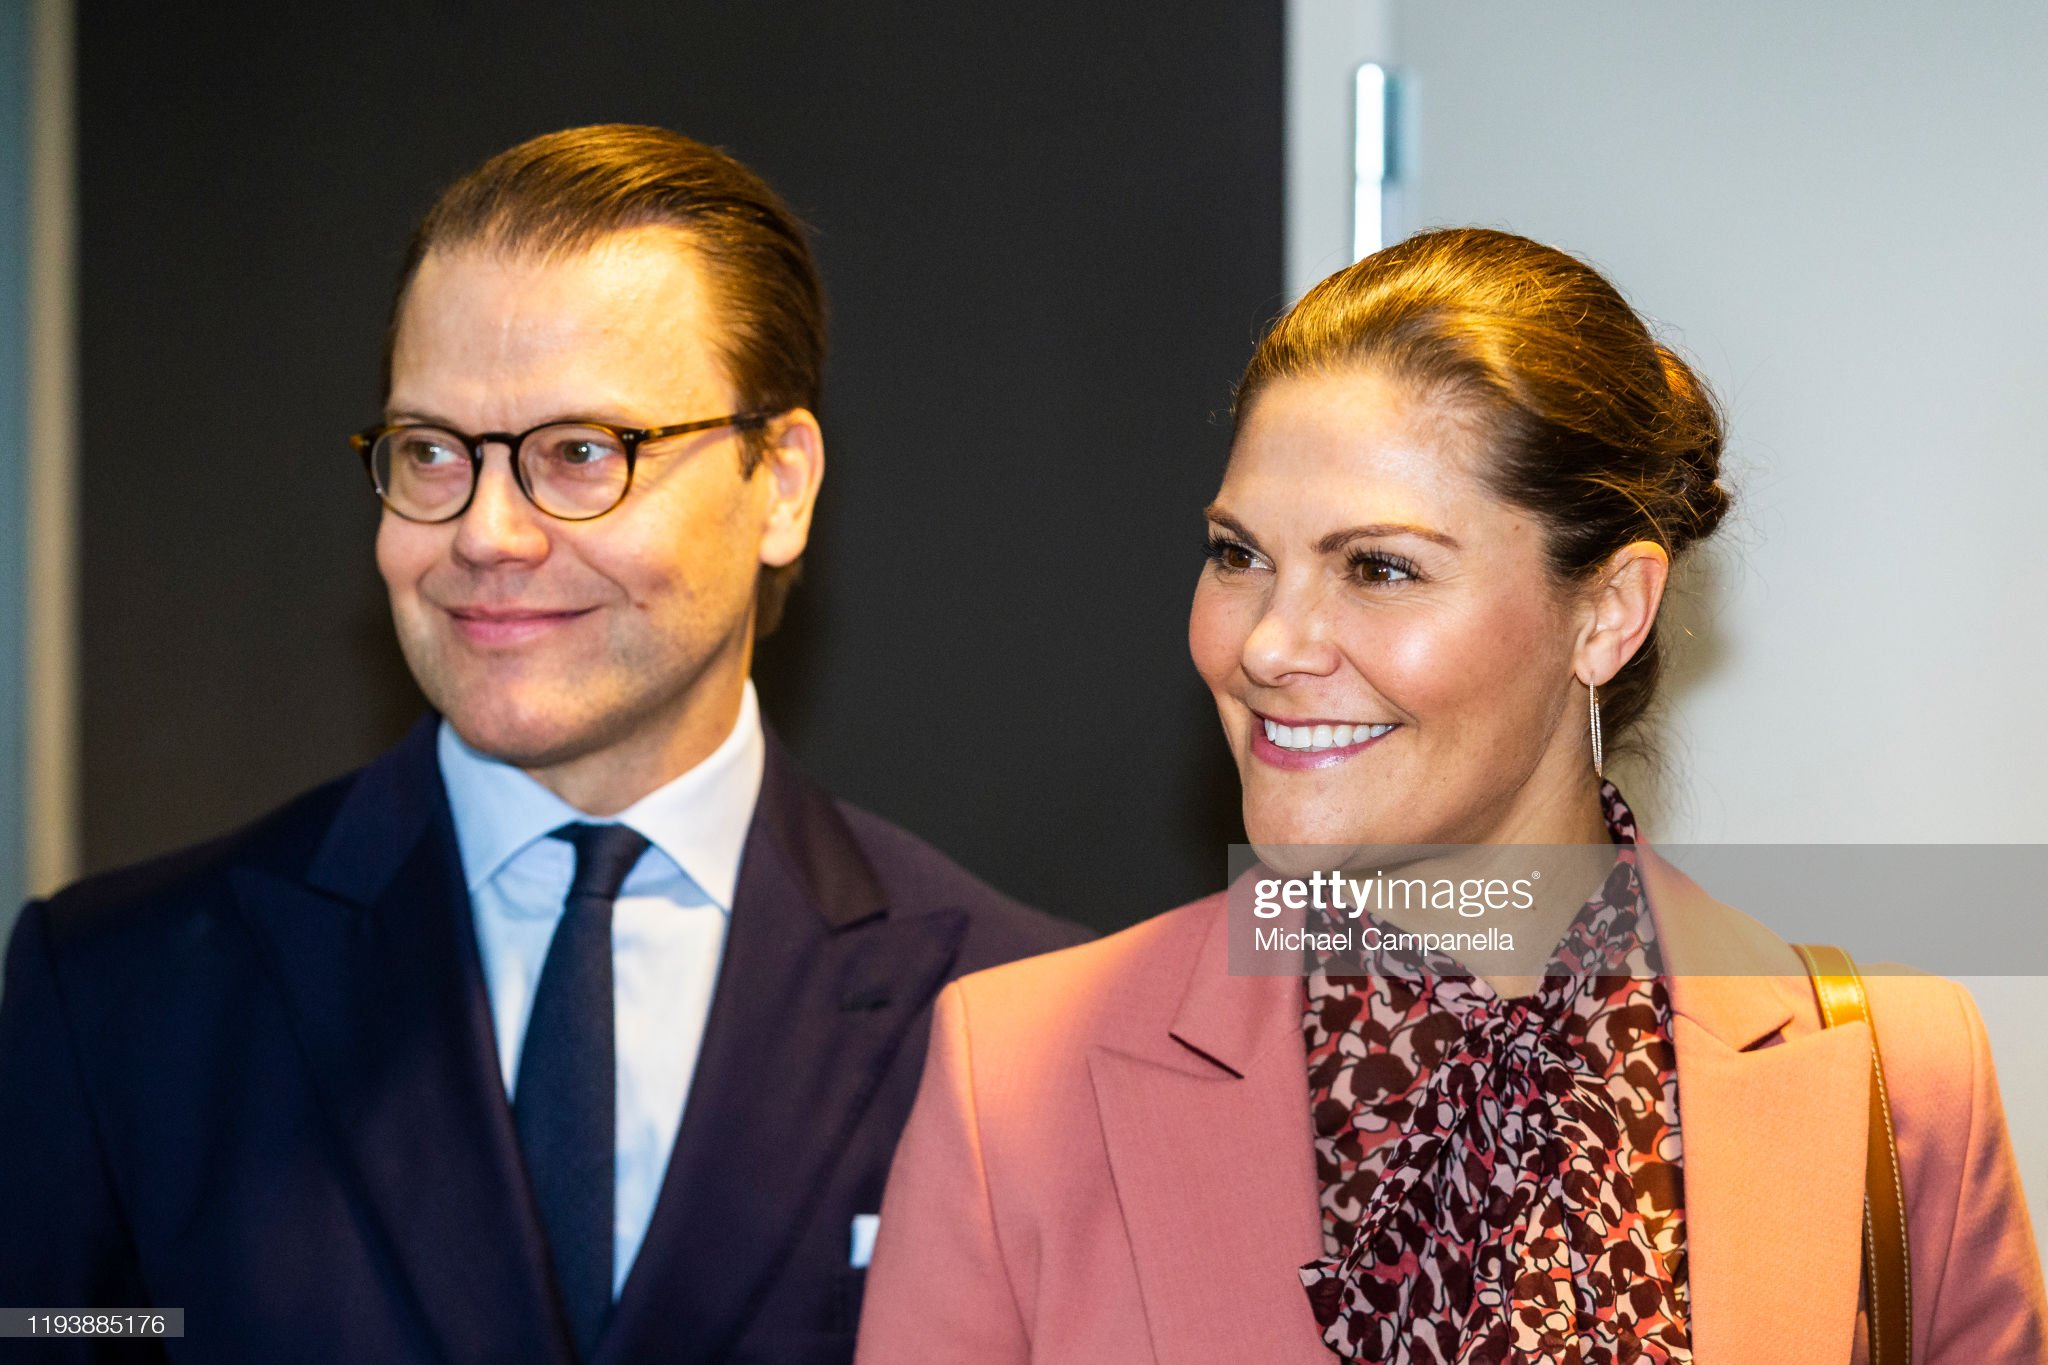 crown-princess-victoria-of-sweden-and-prince-daniel-of-sweden-visit-picture-id1193885176